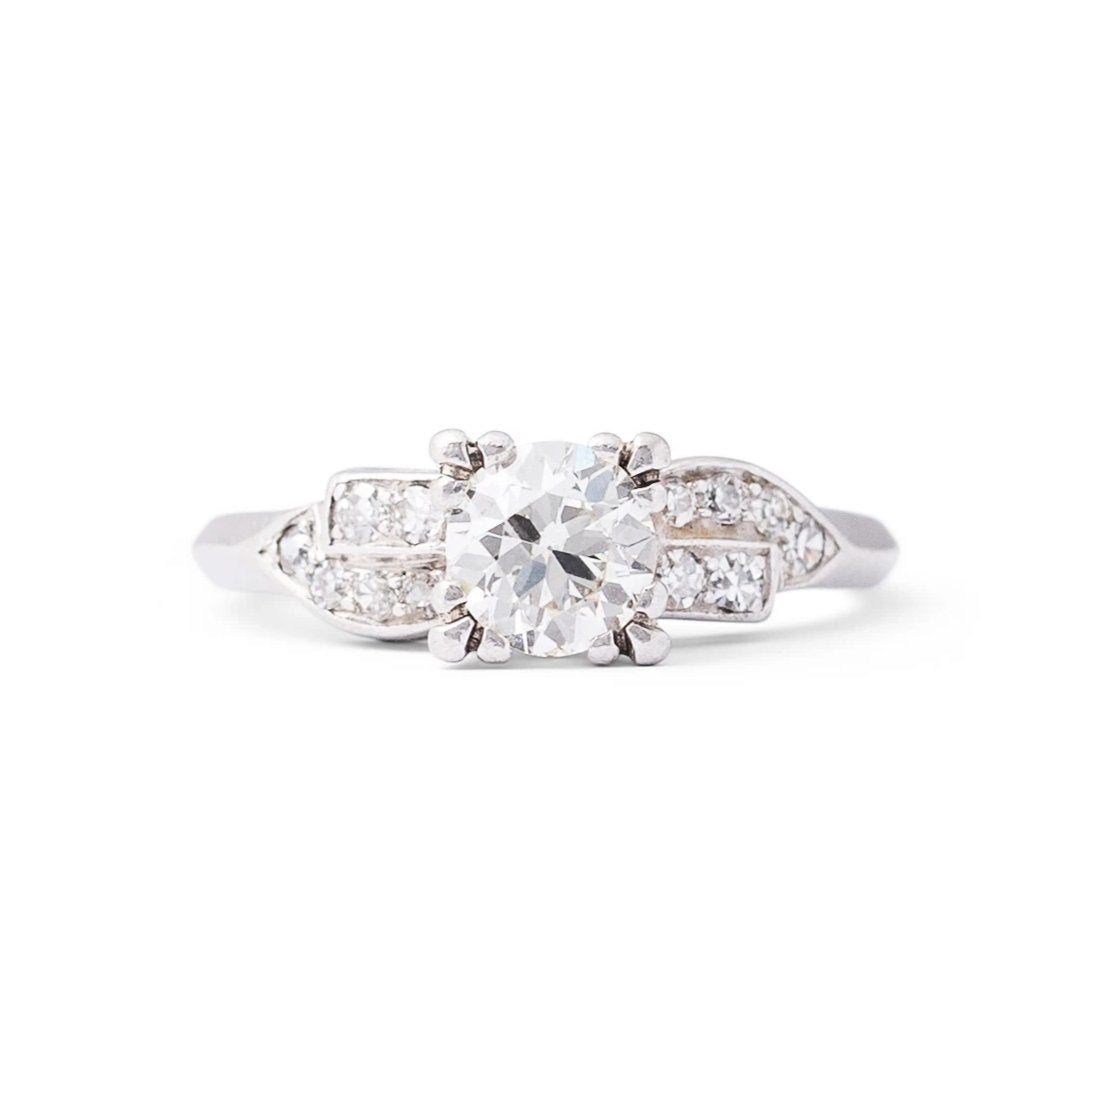 Transitional Round Brilliant Diamond and Platinum Engagement Ring